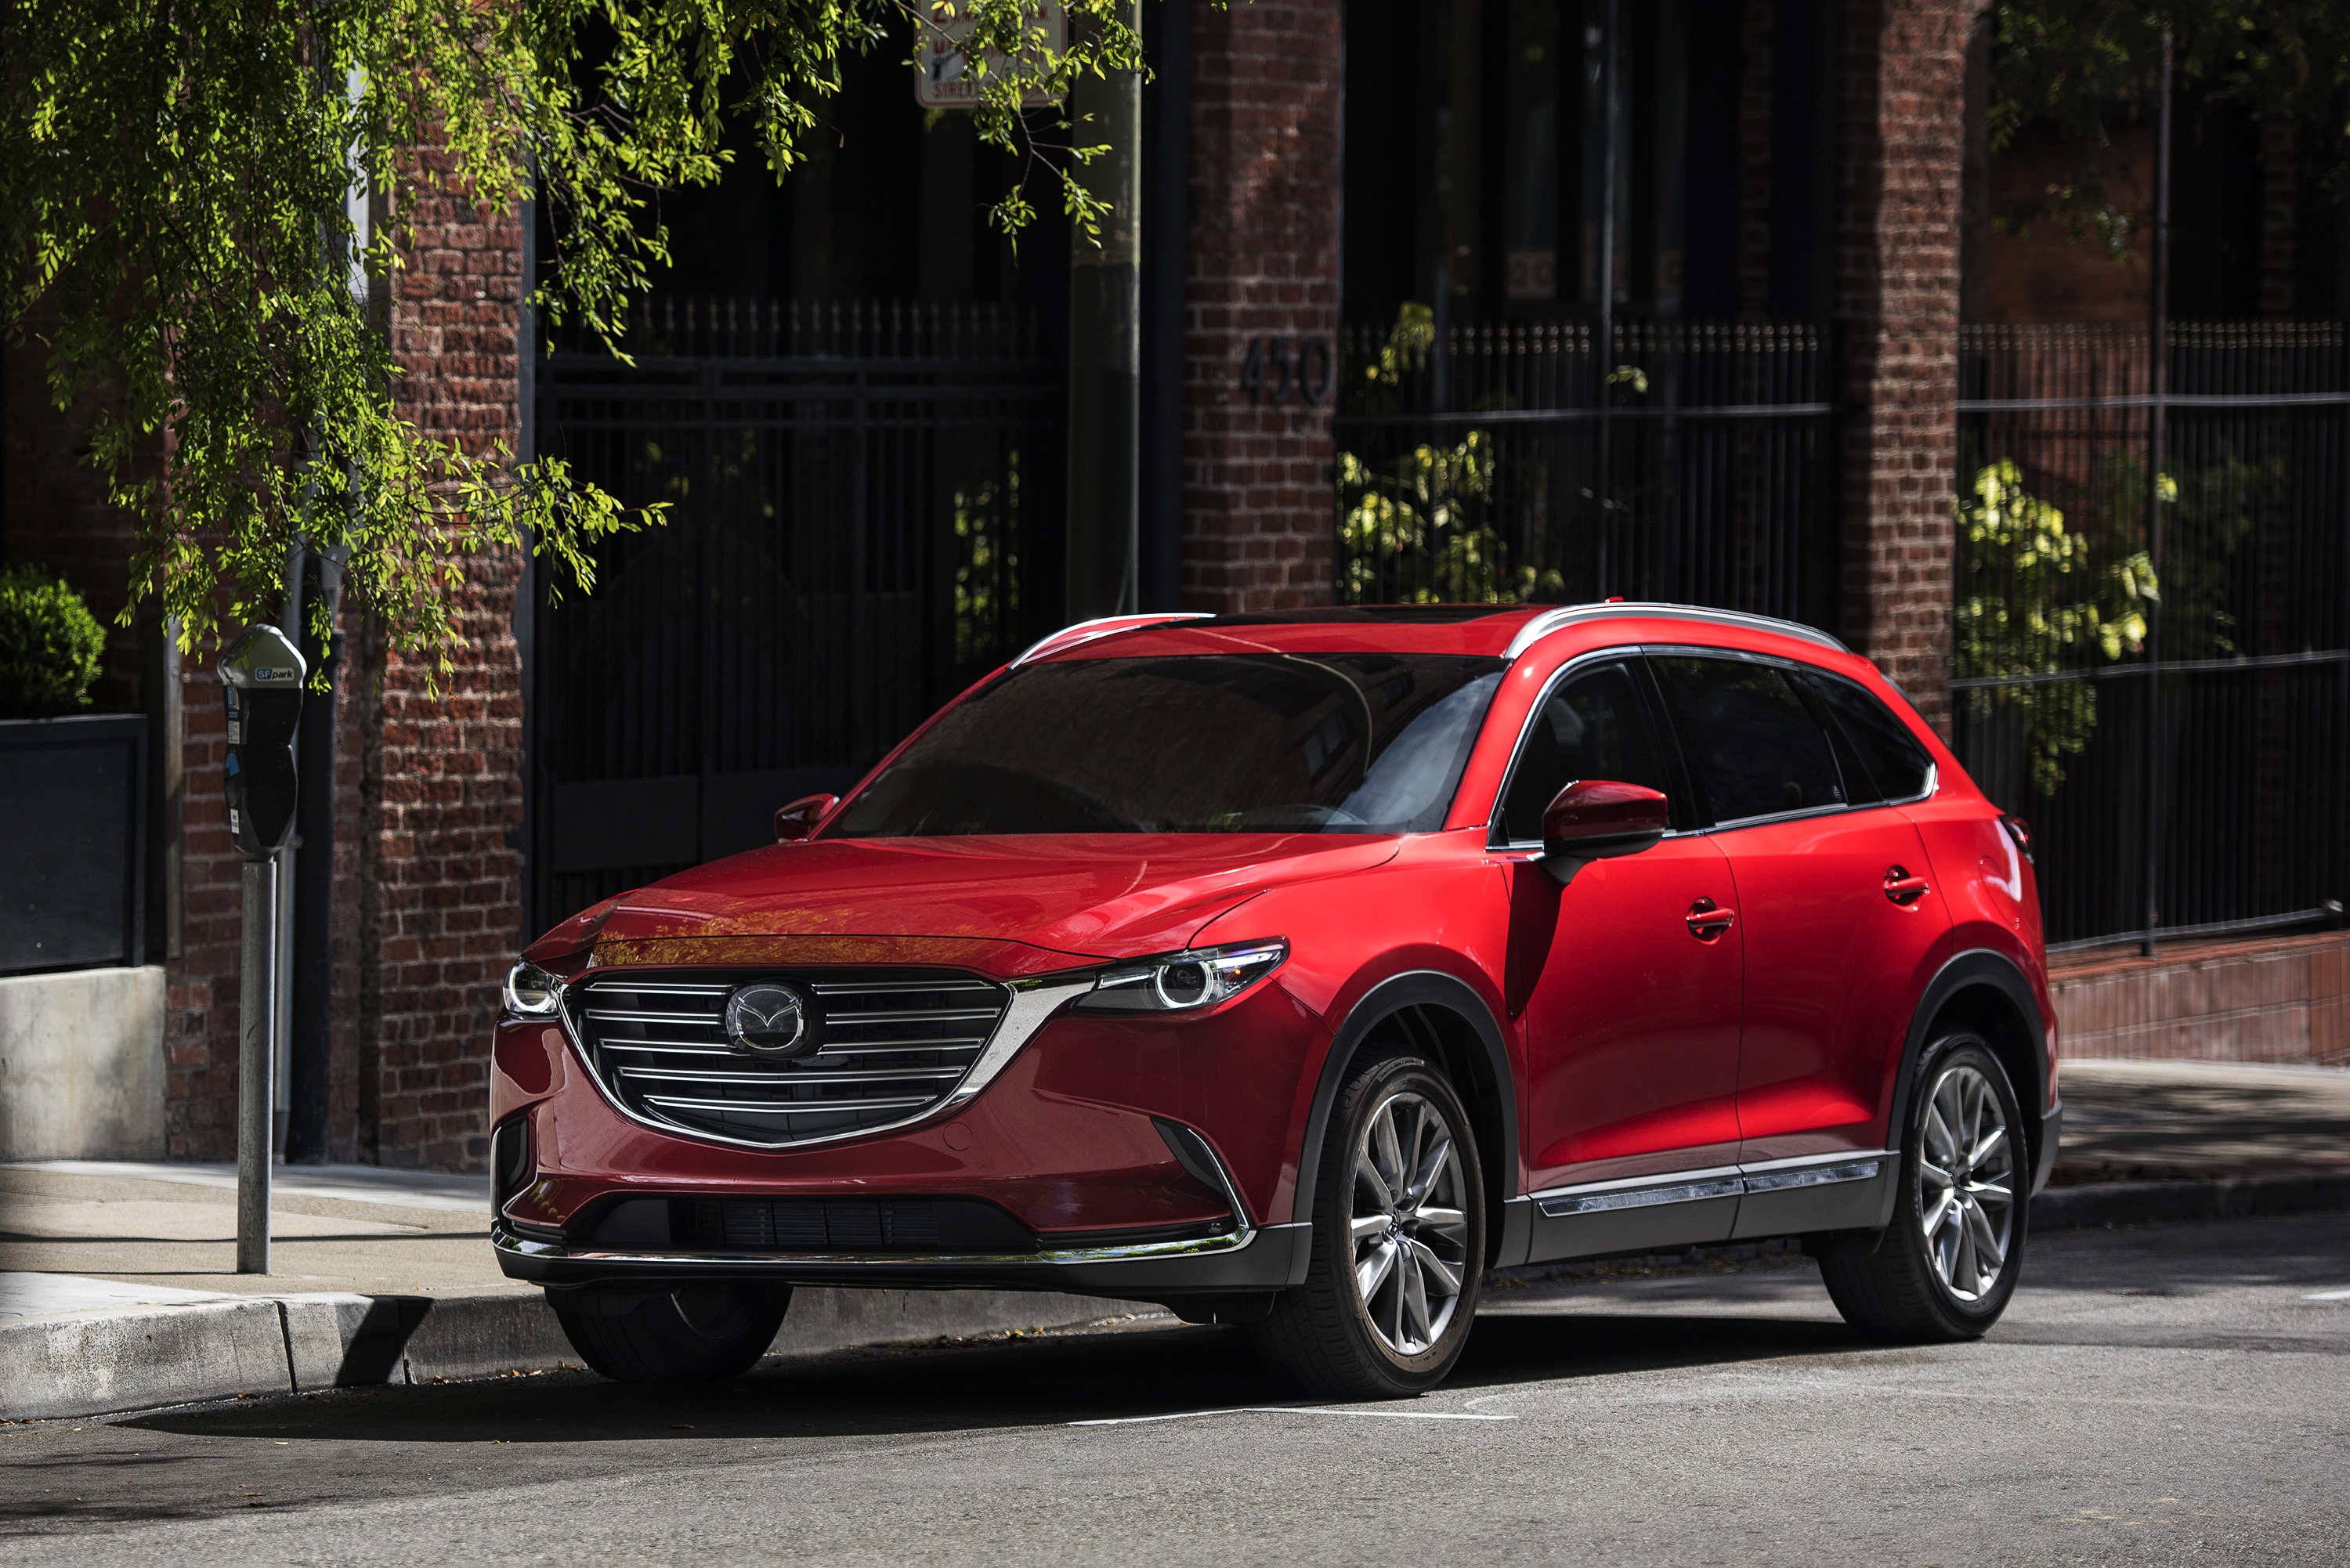 All New 2017 Mazda CX-9 Review